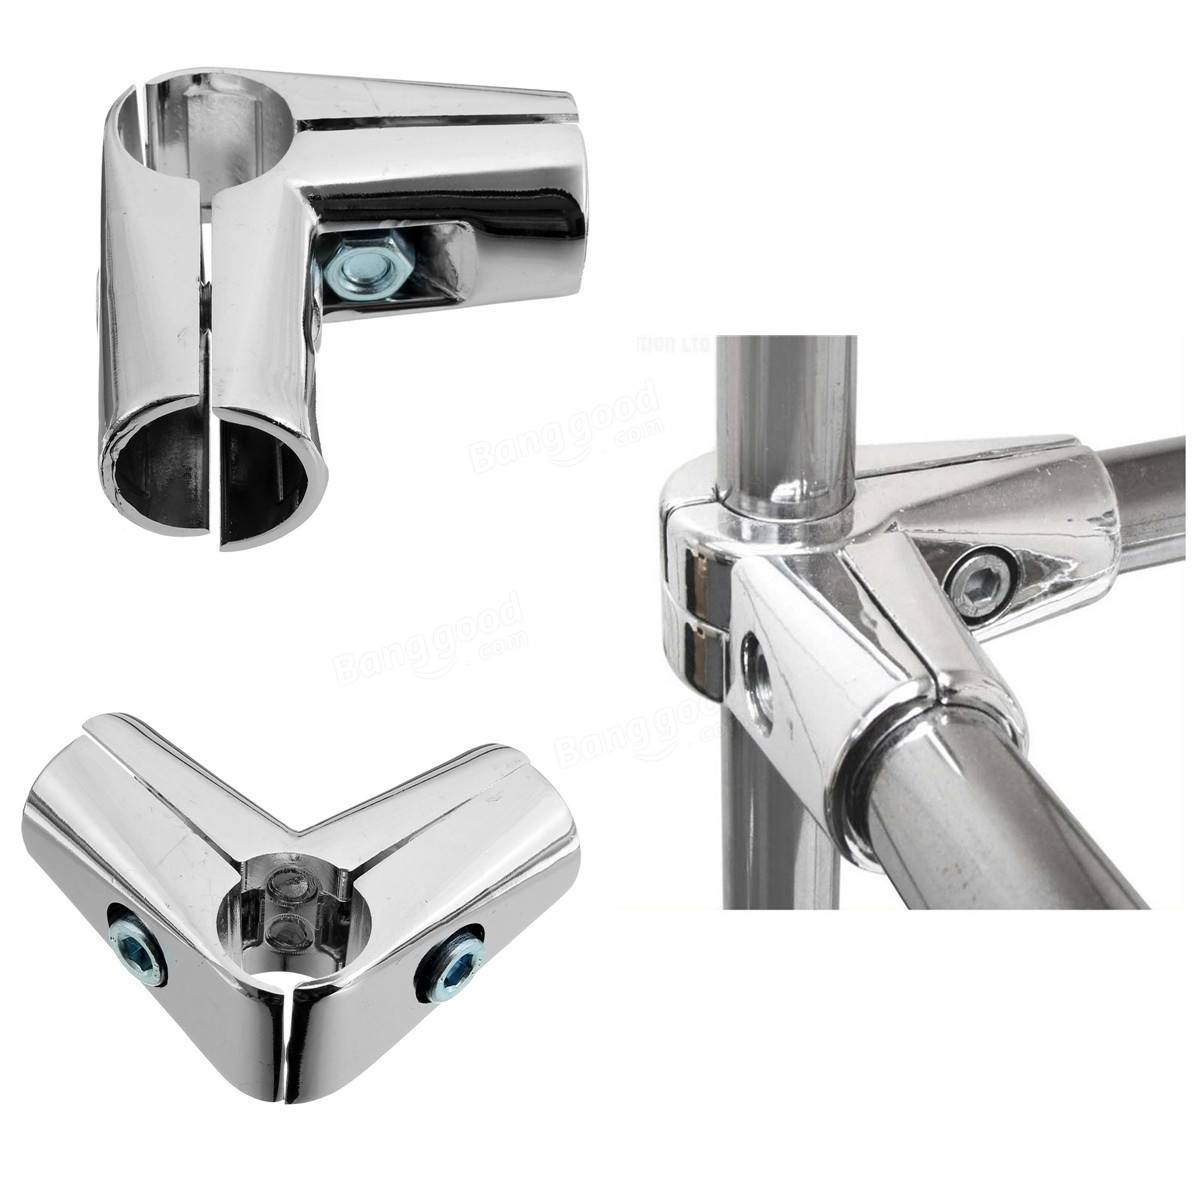 3 way displays match the letters on diagram of human brain 25mm elbow tube clamp l shaped pipe fitting